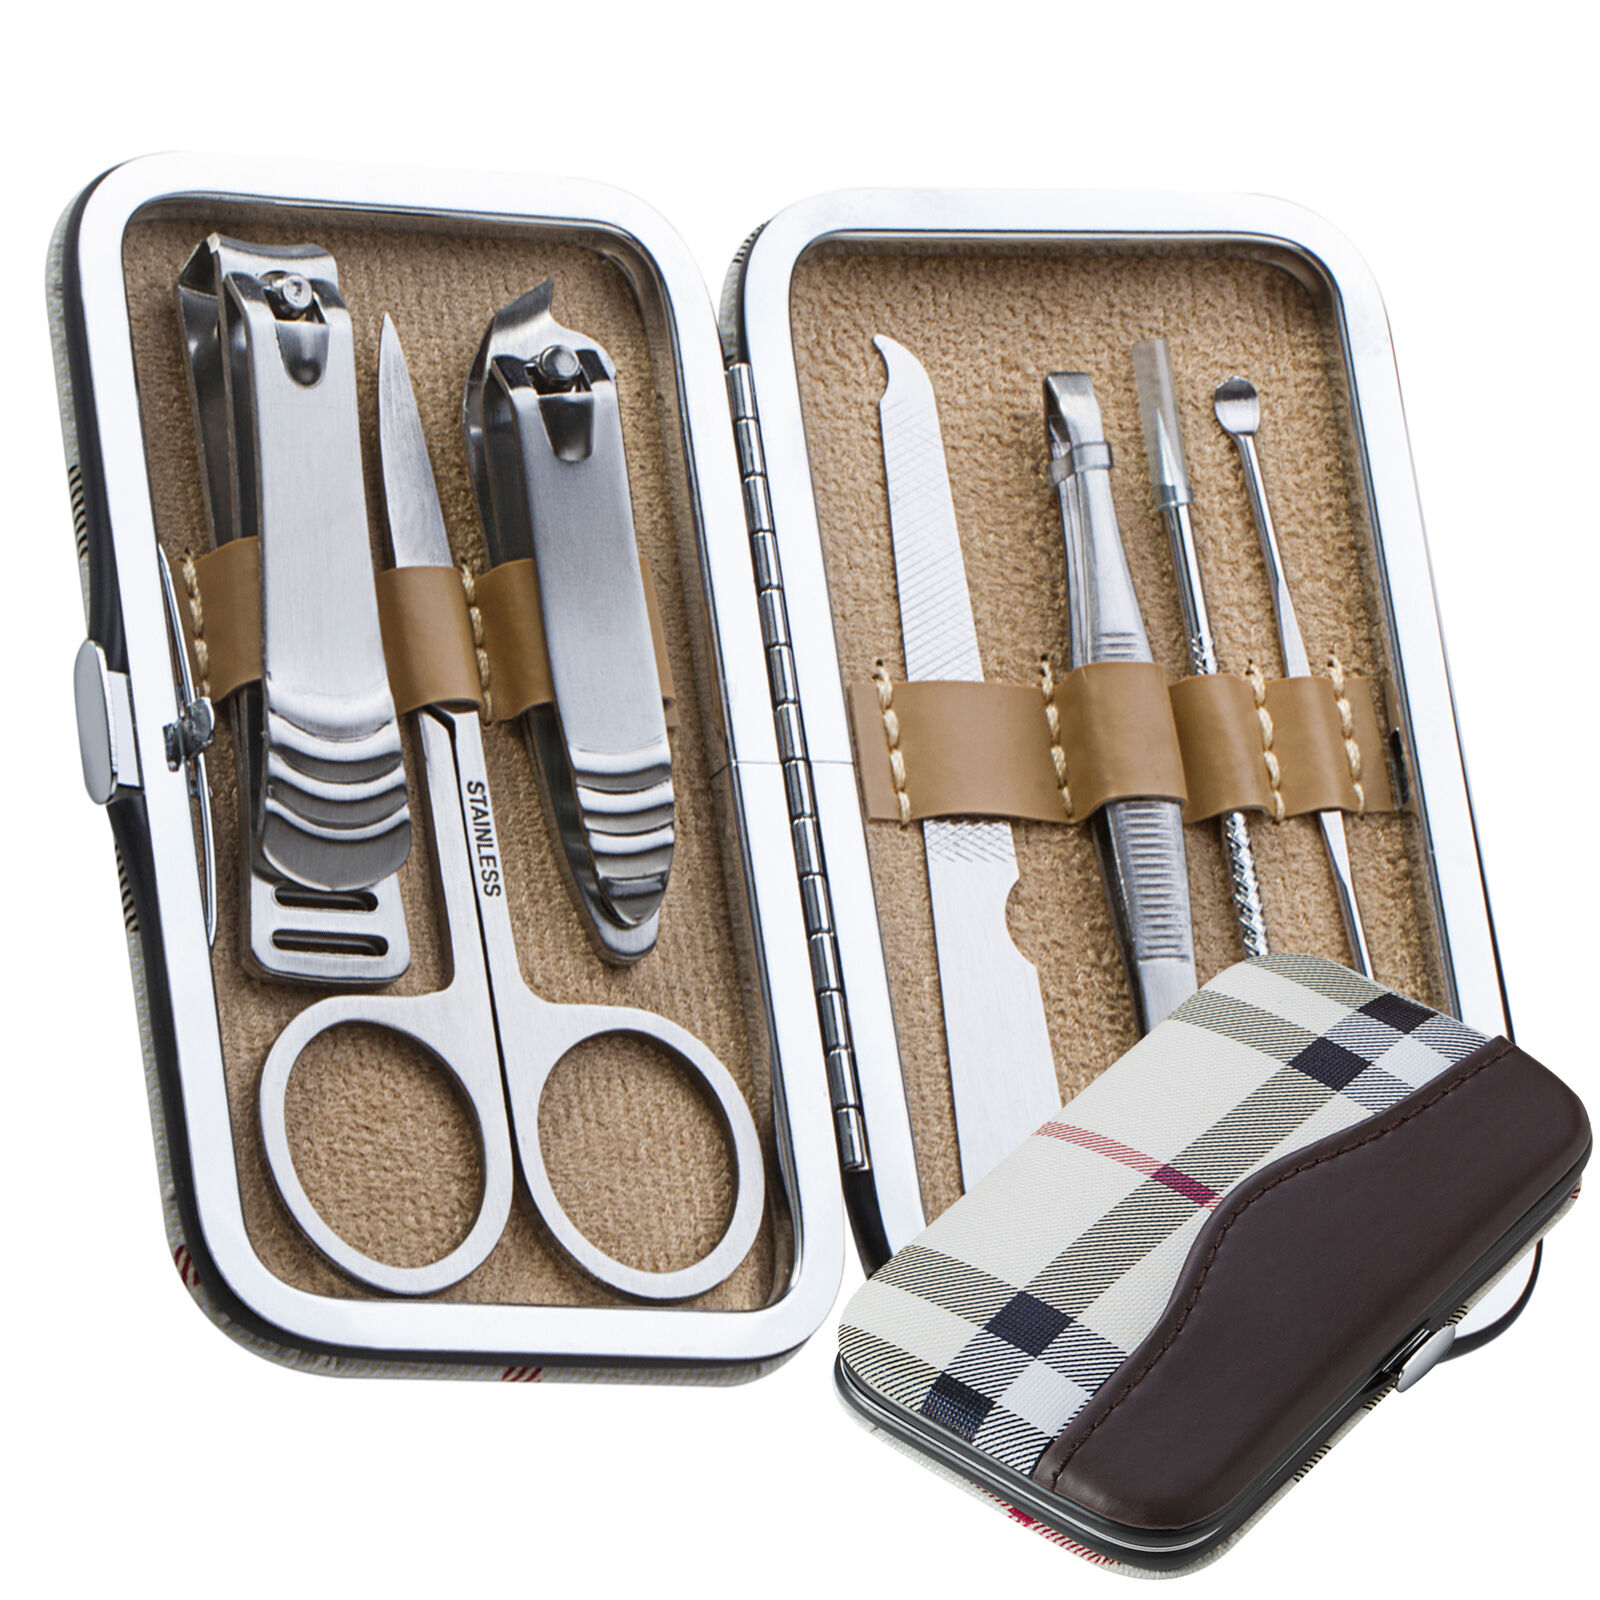 7 PCS Pedicure / Manicure Set Nail Clippers Cleaner Cuticle Grooming Kit Case Health & Beauty